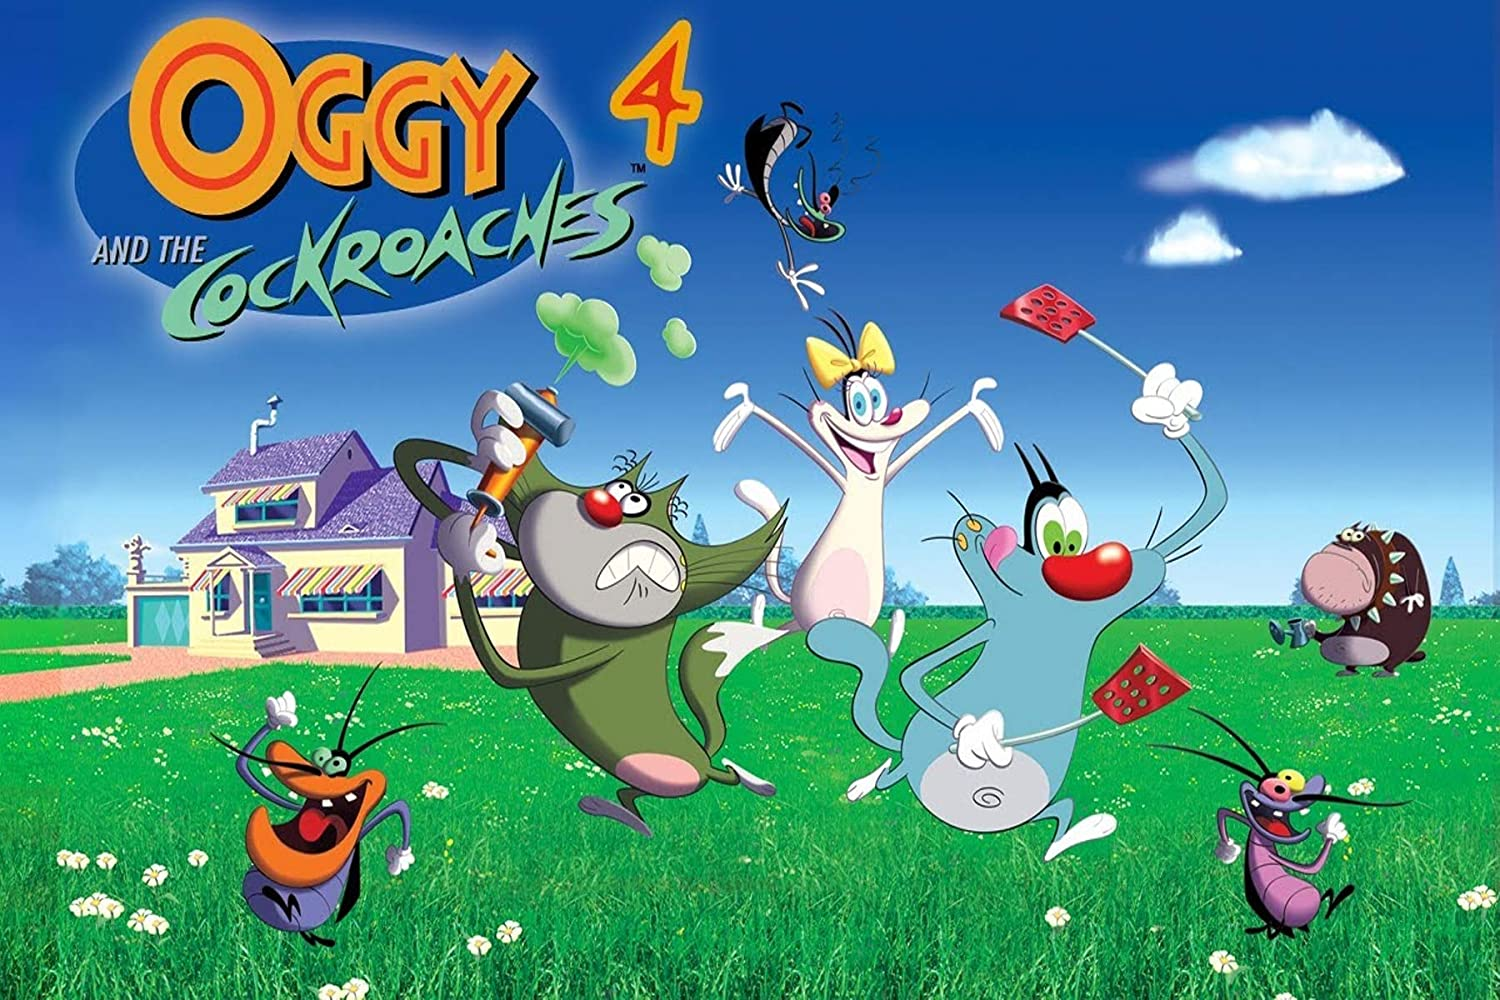 Yellow Alley Oggy And The Cockroaches Cartoon Brave Warrior